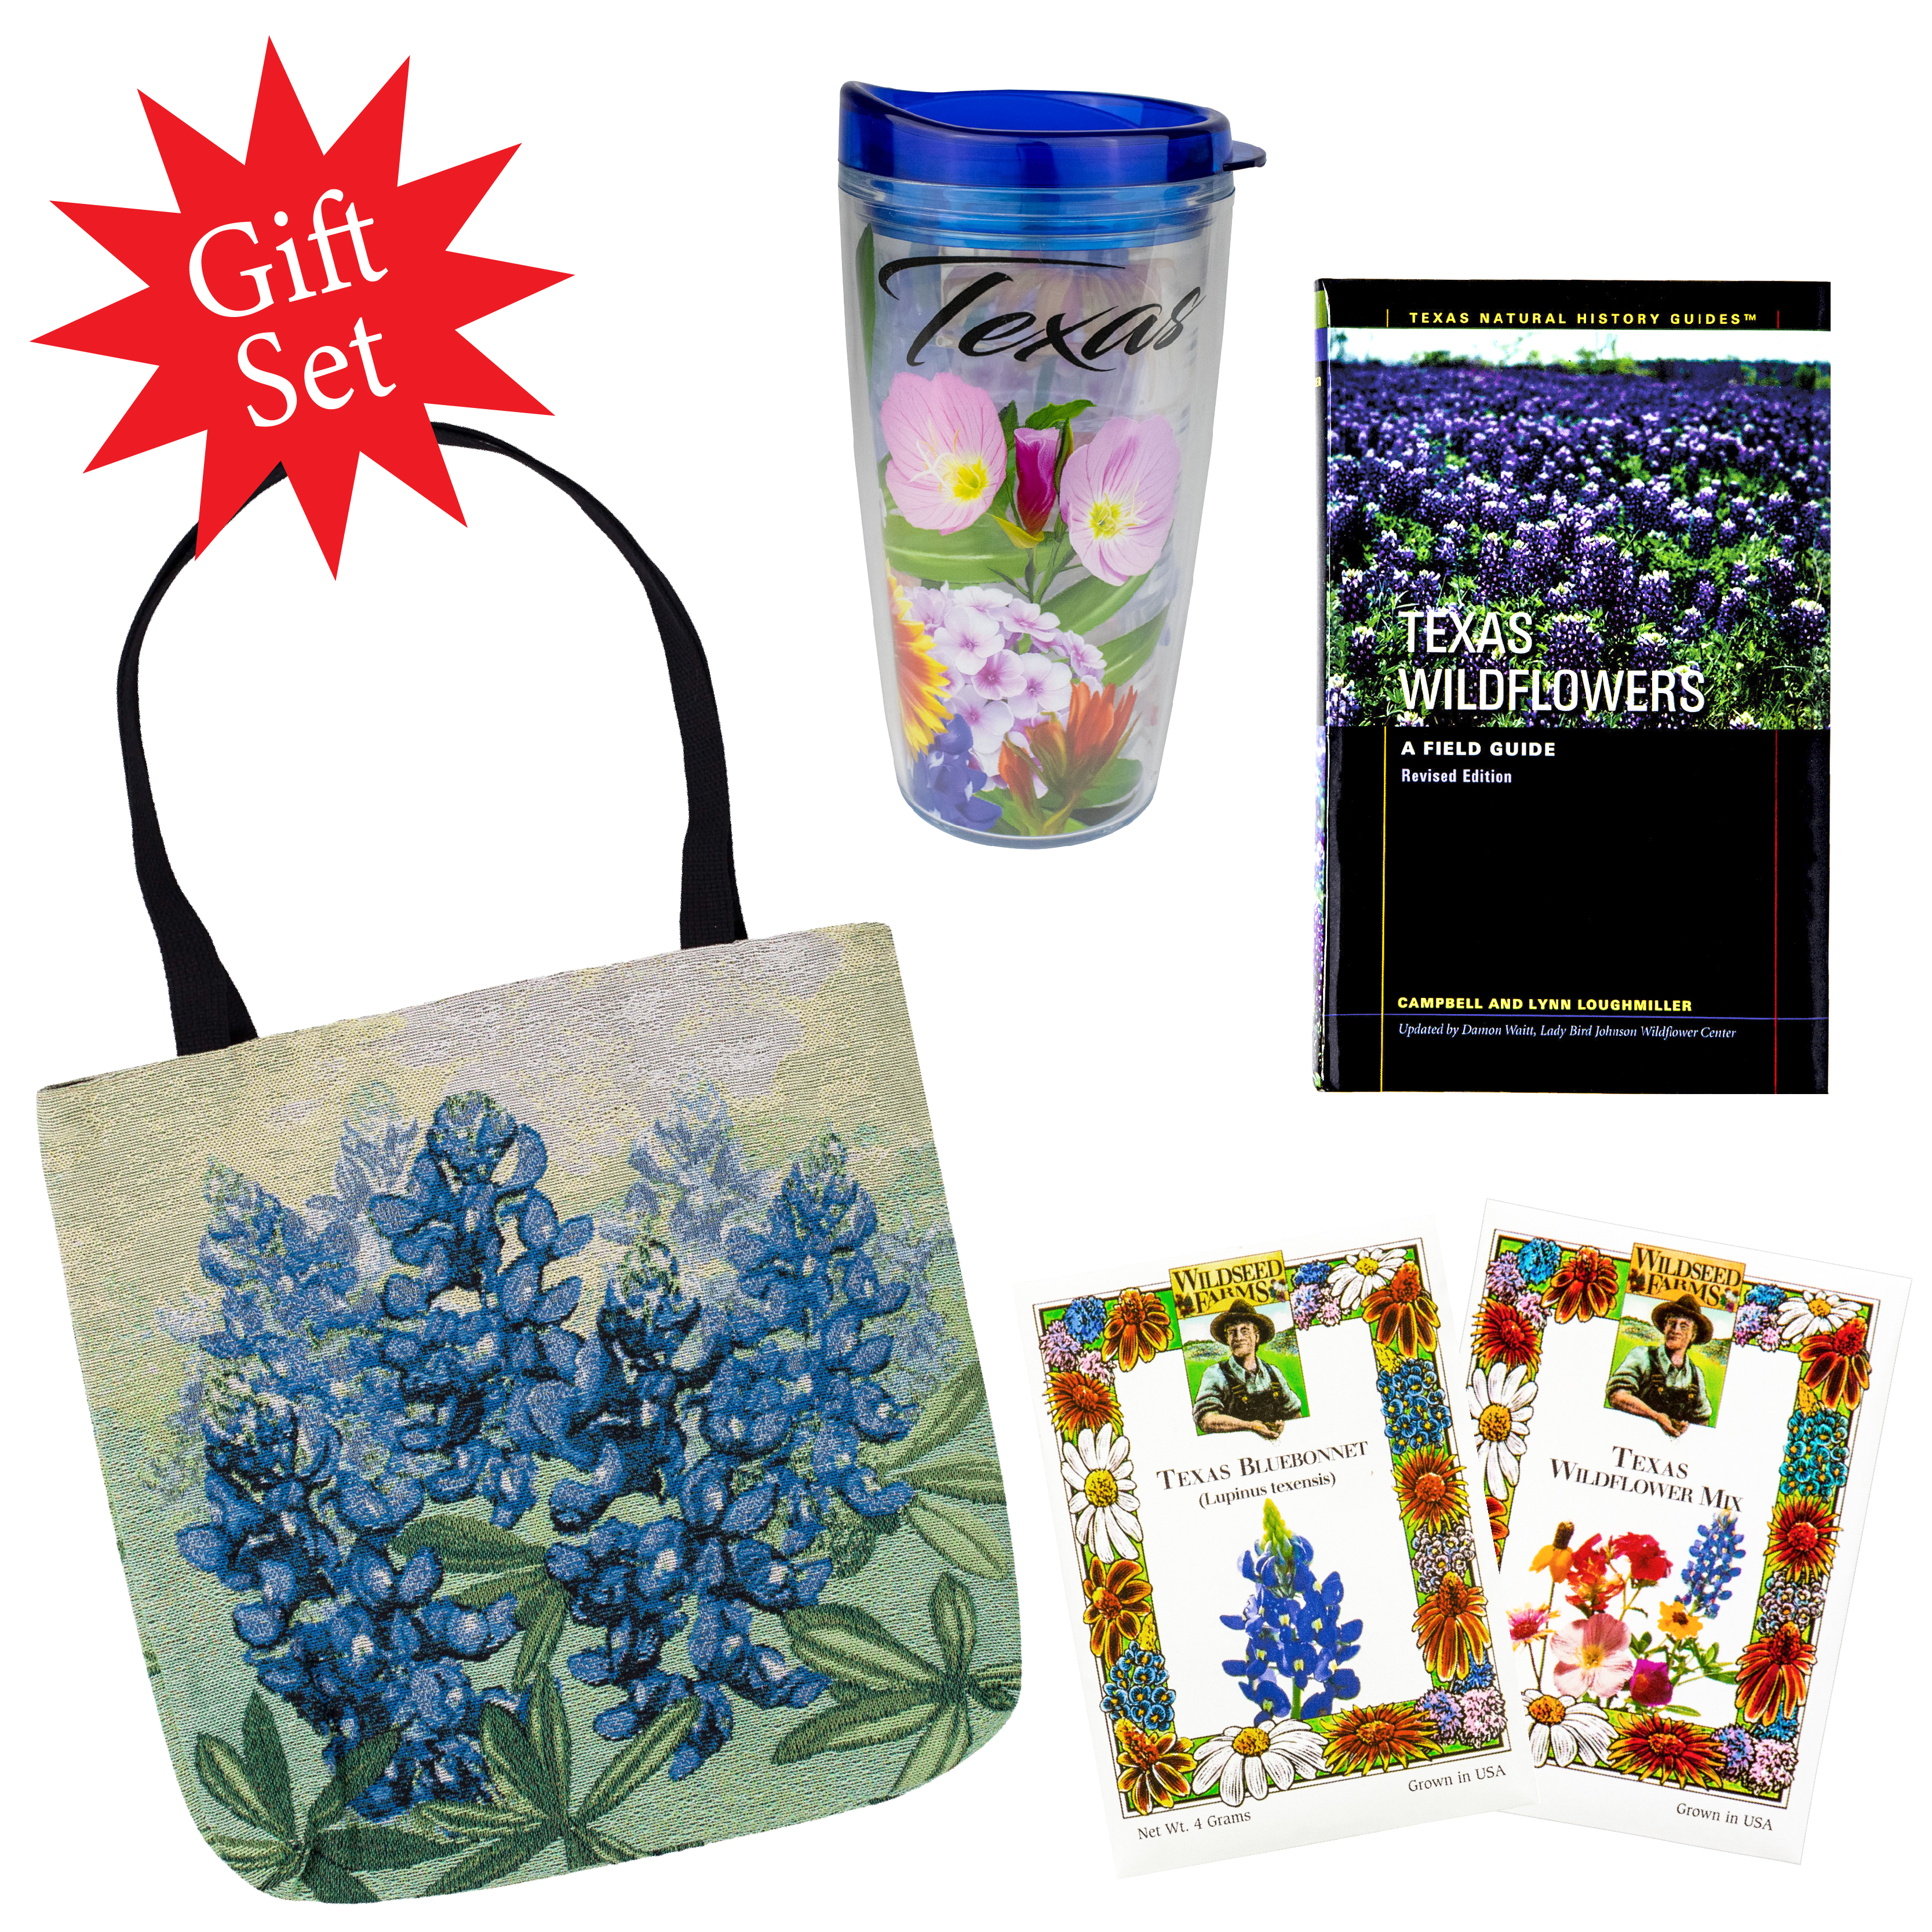 Outdoor Bluebonnet Gift Set